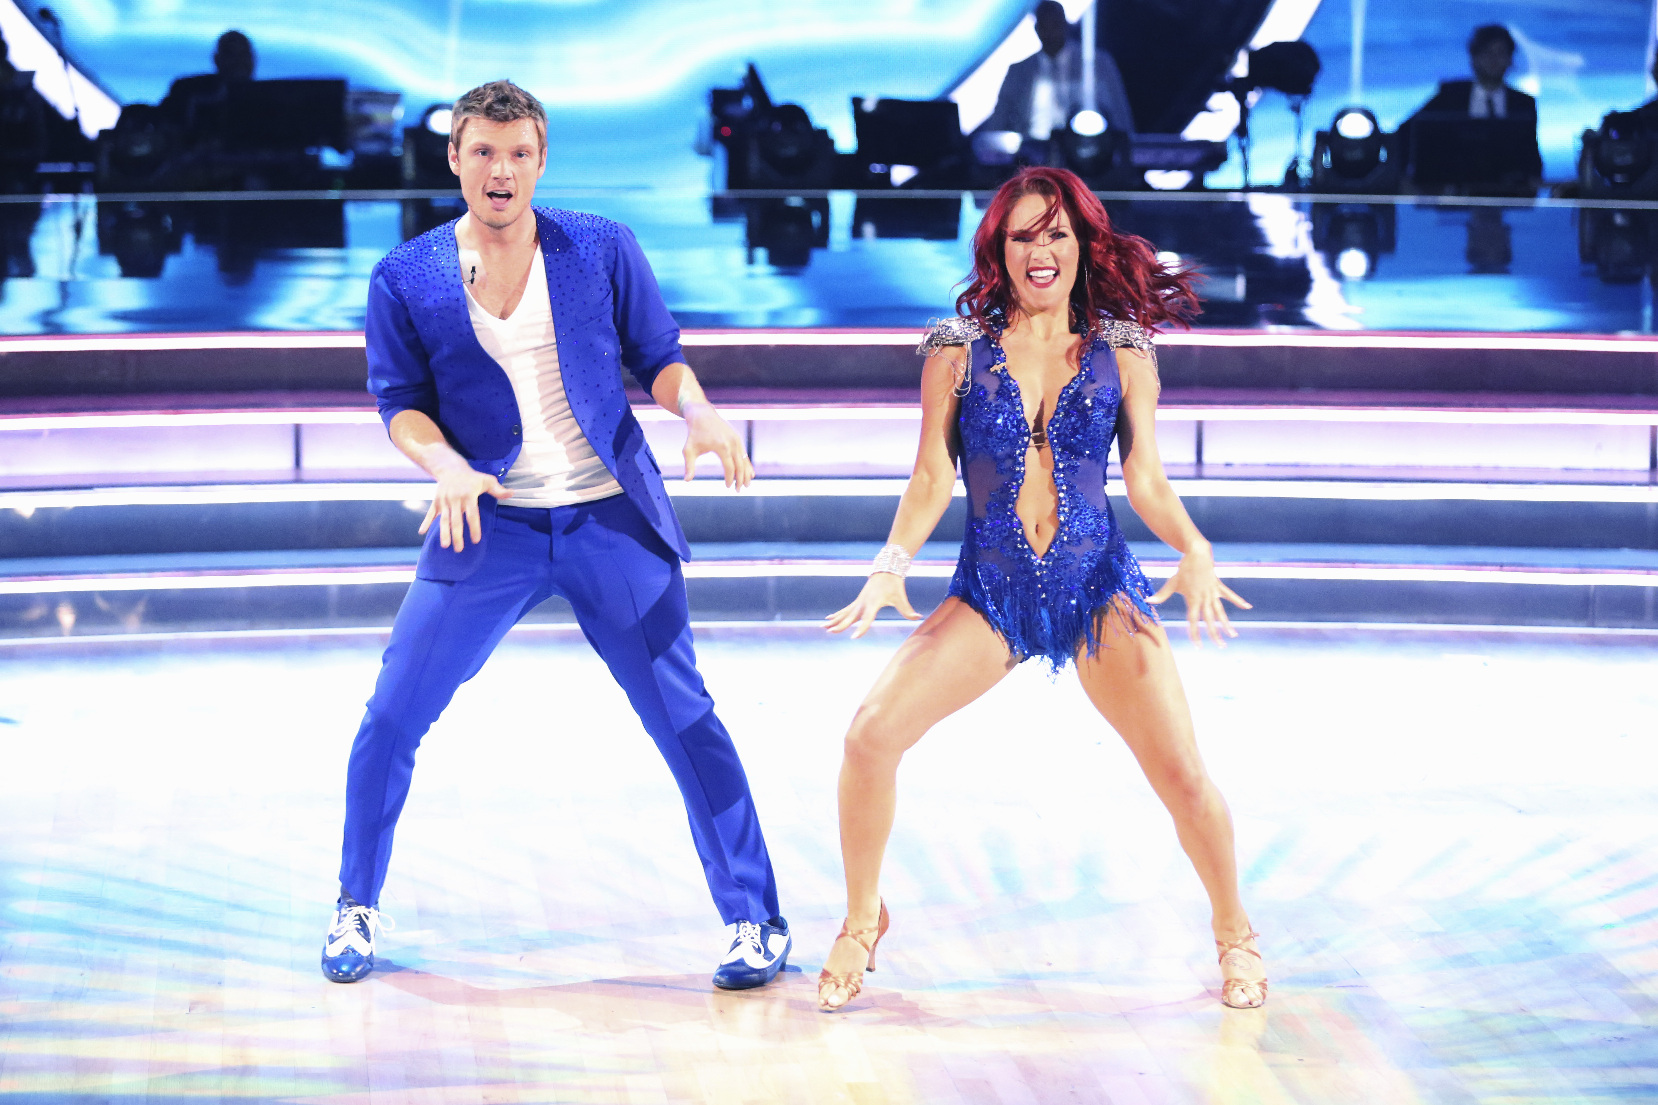 dancing with the stars couple dating australia 13 couples who found romance in the dancing with  but their romance isn't new — the dancing duo have been dating off and on for the past two years  the dancing with the stars cast mates.